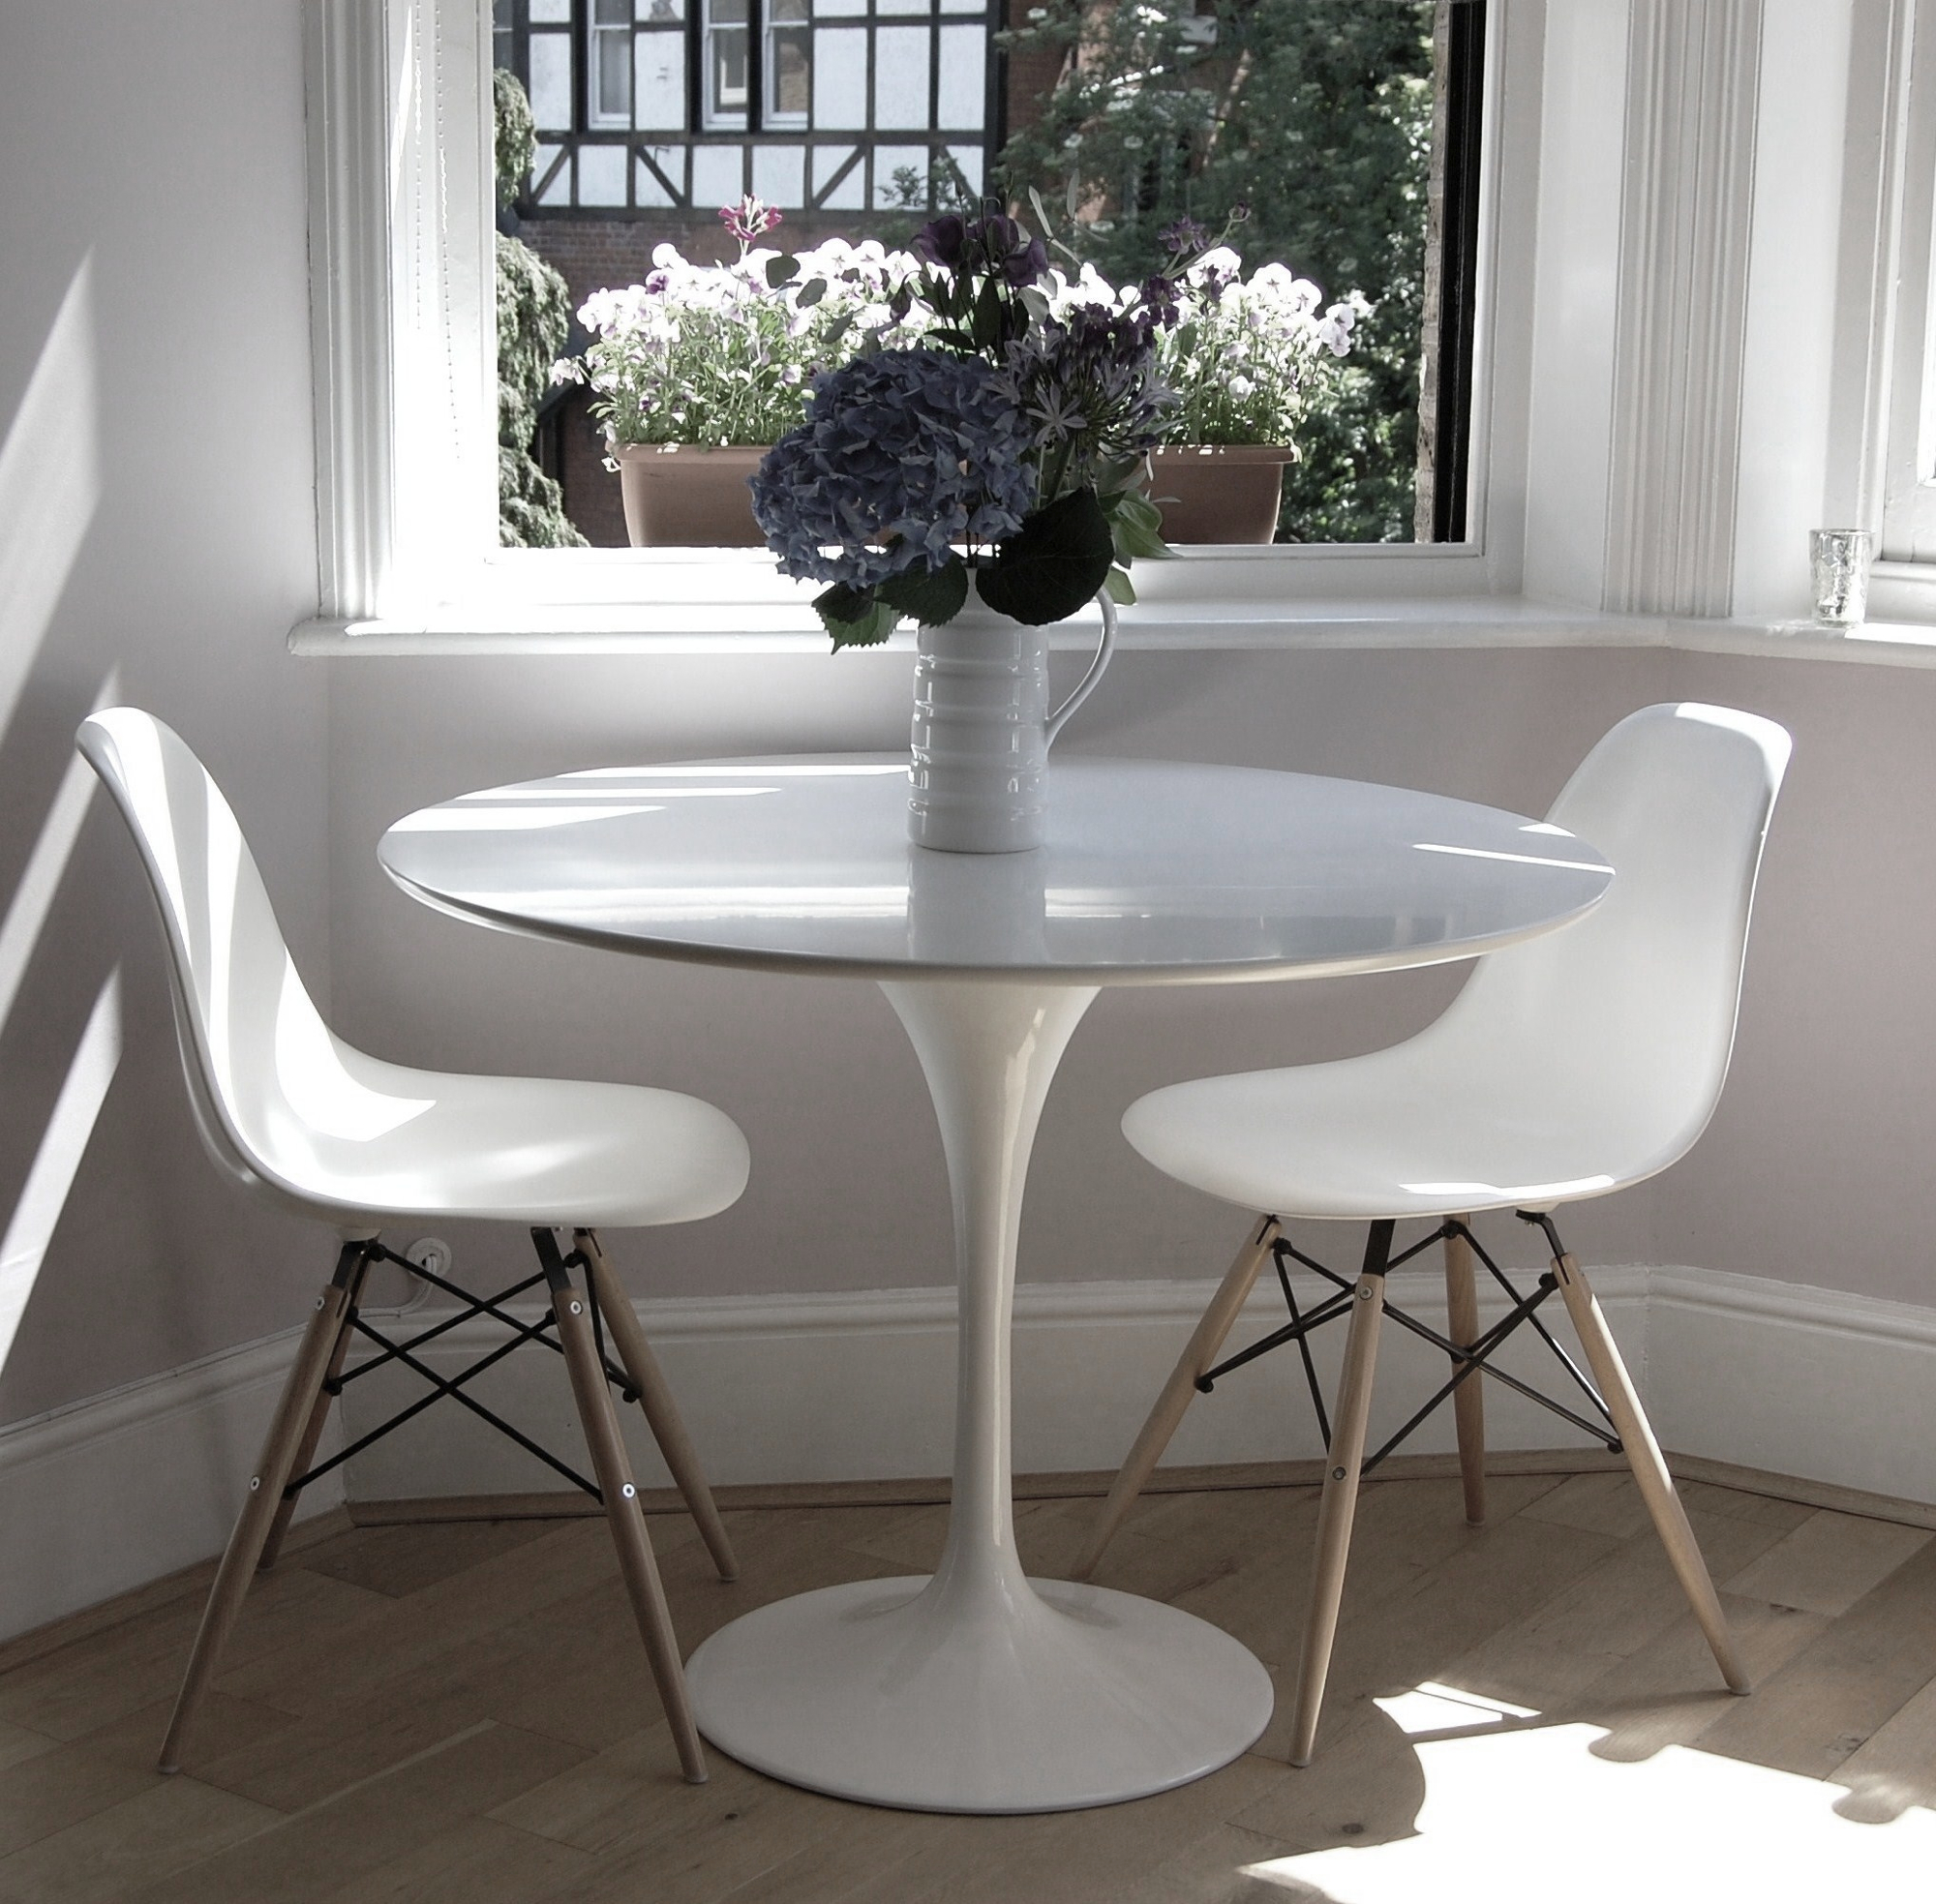 Tulip Table Tulip Dining Table 90cm - The Natural Furniture Company Ltd